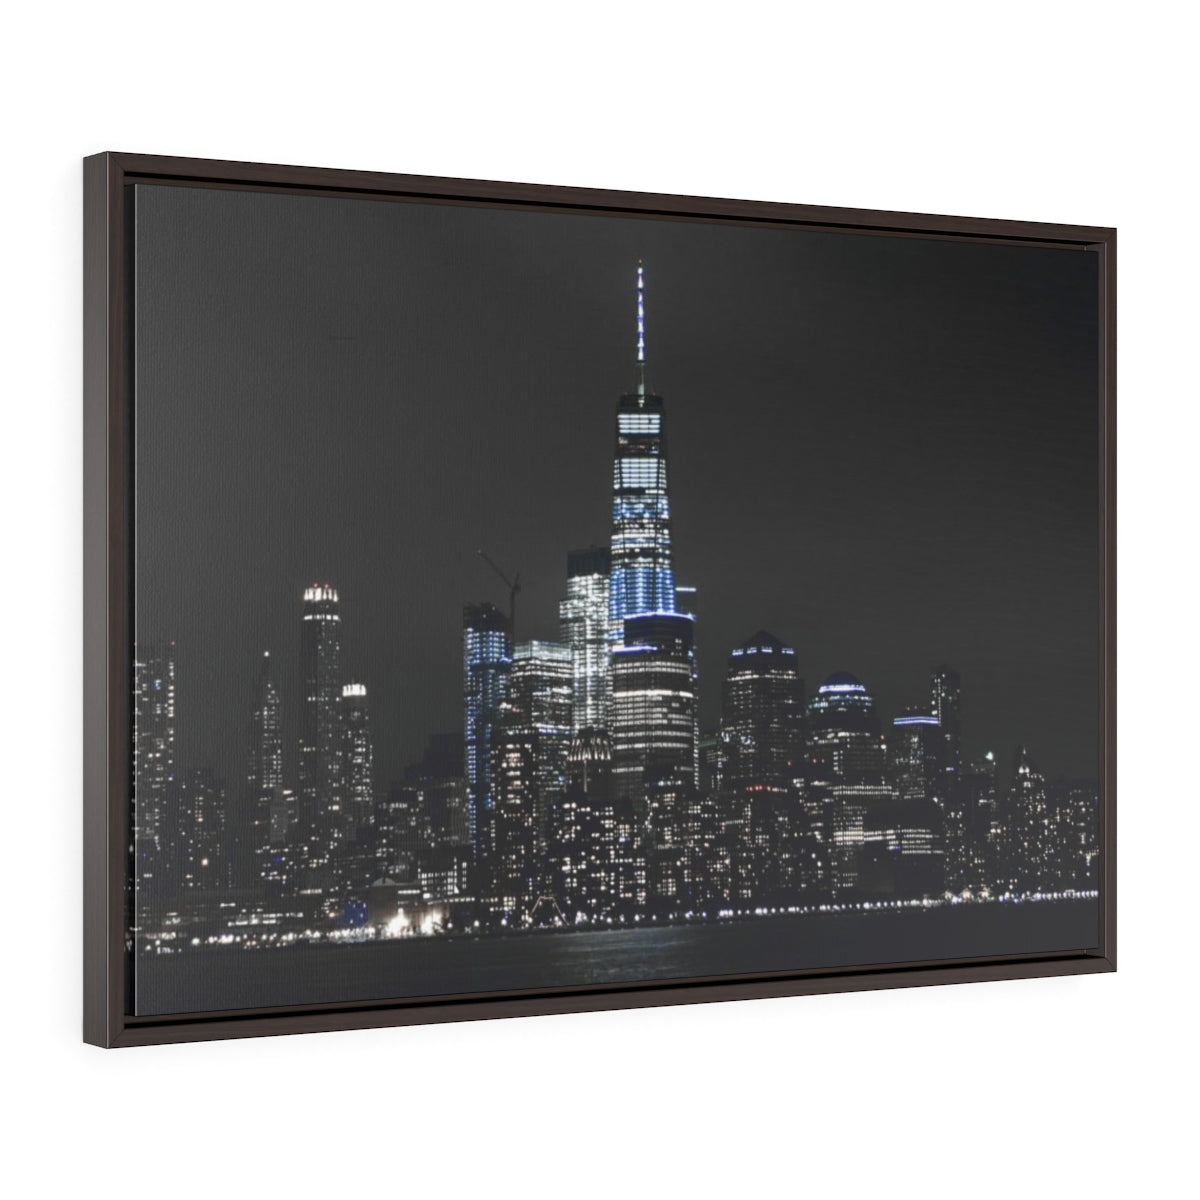 New York Skyline - Horizontal Framed Premium Gallery Wrap Canvas